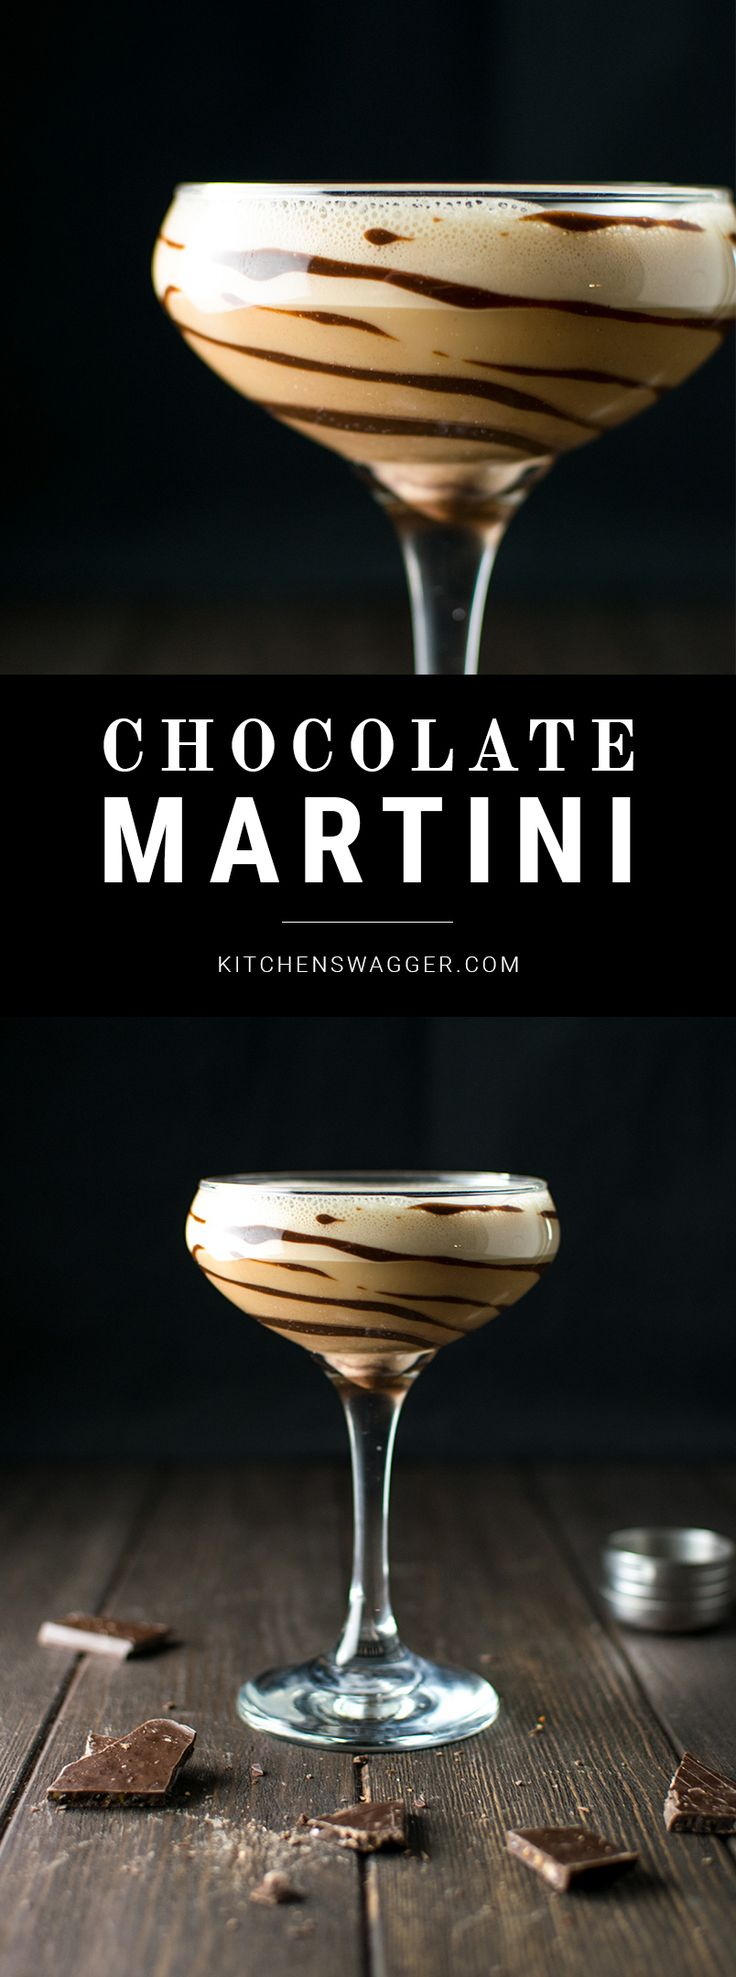 The chocolate martini is the ultimate dessert martini. Made with vanilla vodka and both Godiva dark chocolate and chocolate liqueurs.